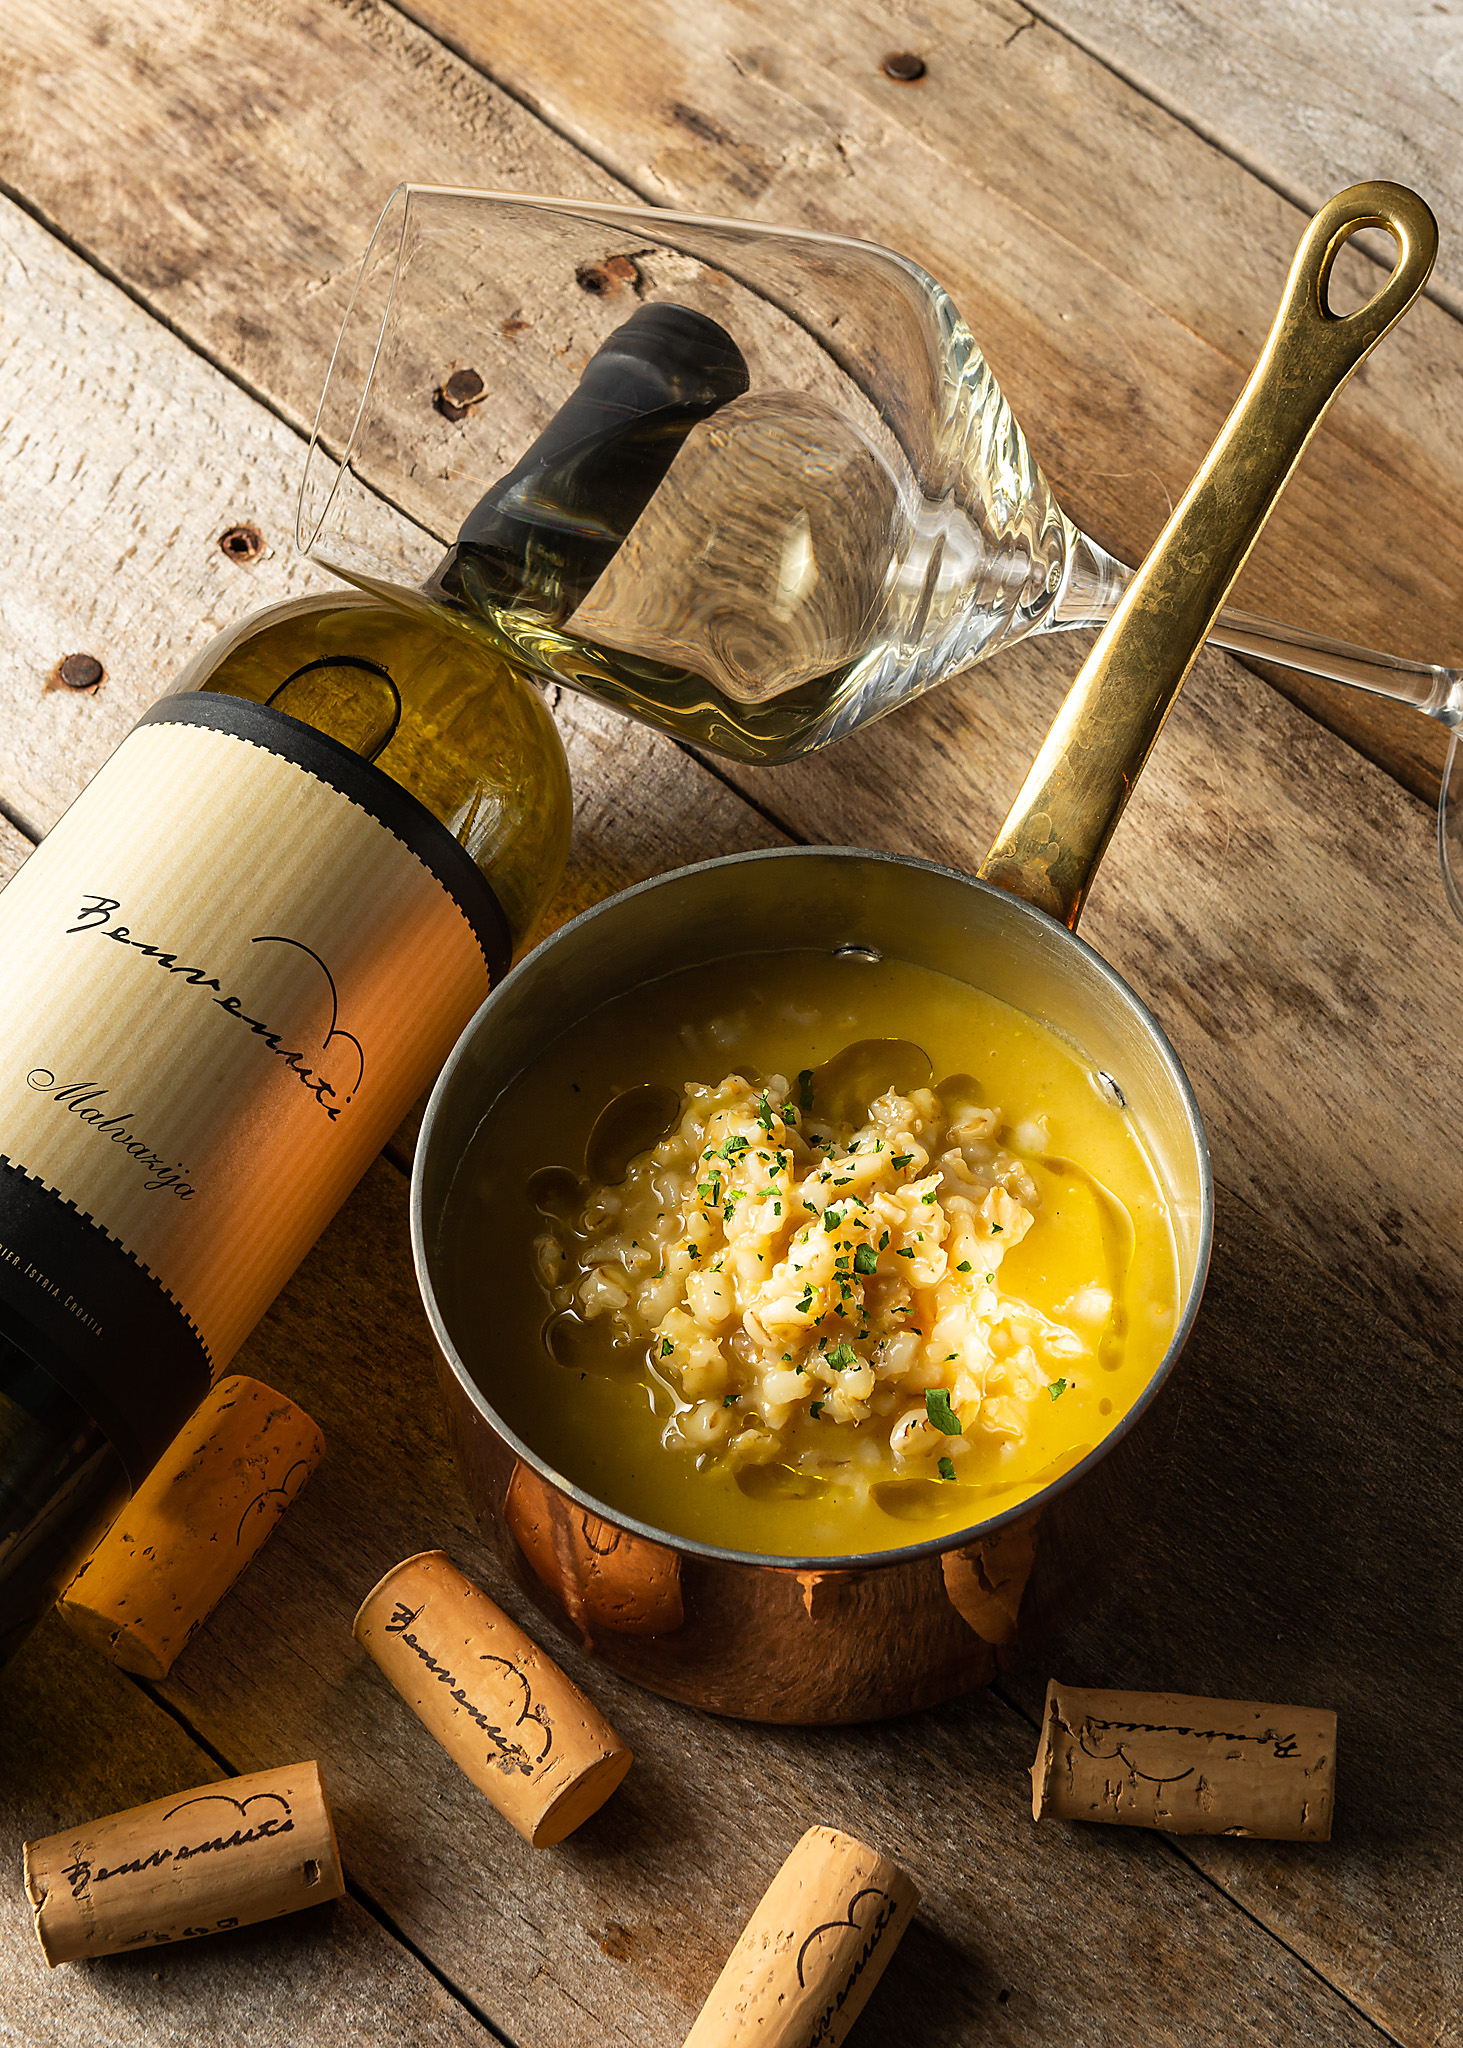 hren | plethora of creativity // Benvenuti winery food pairing photography